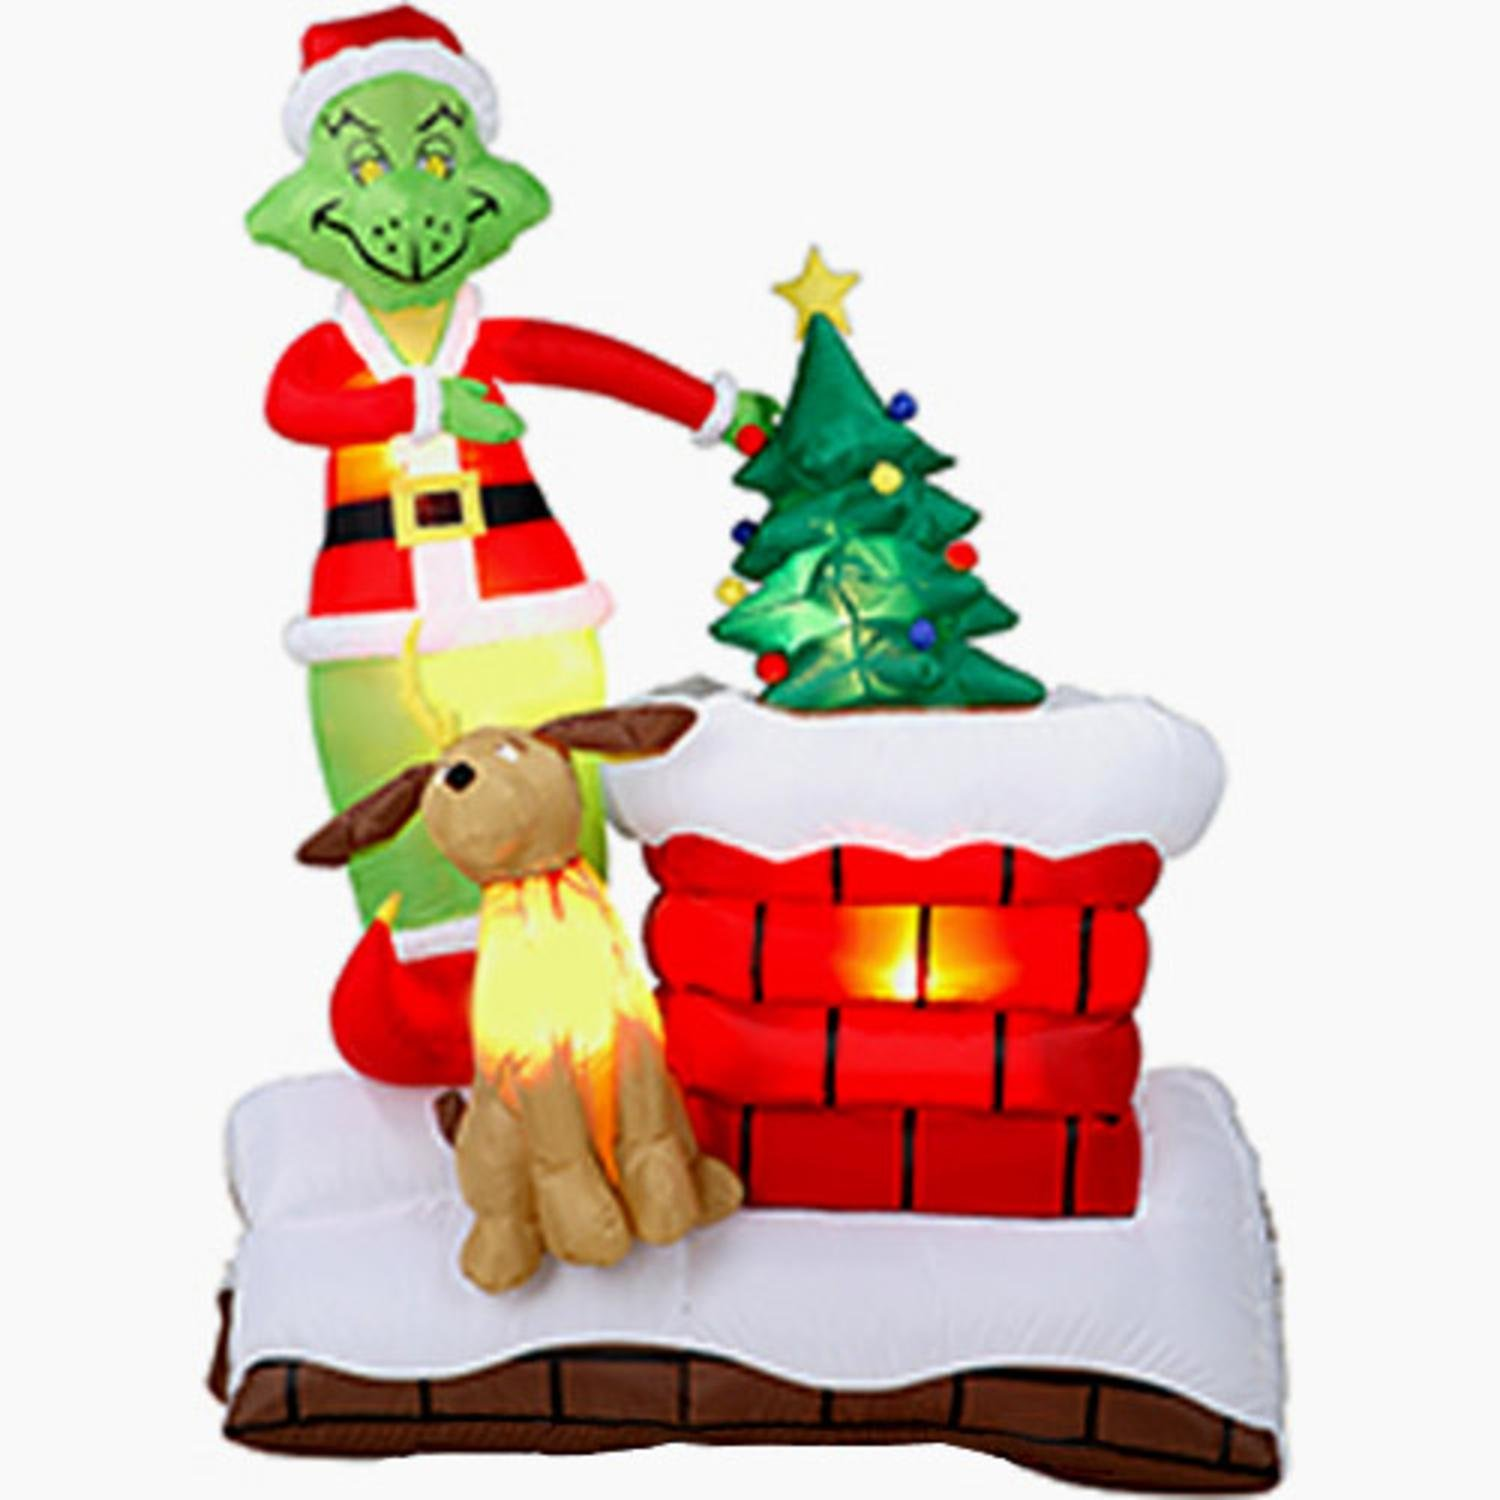 6' Dr. Seuss How The Grinch Stole Christmas Airblown Inflatable ...